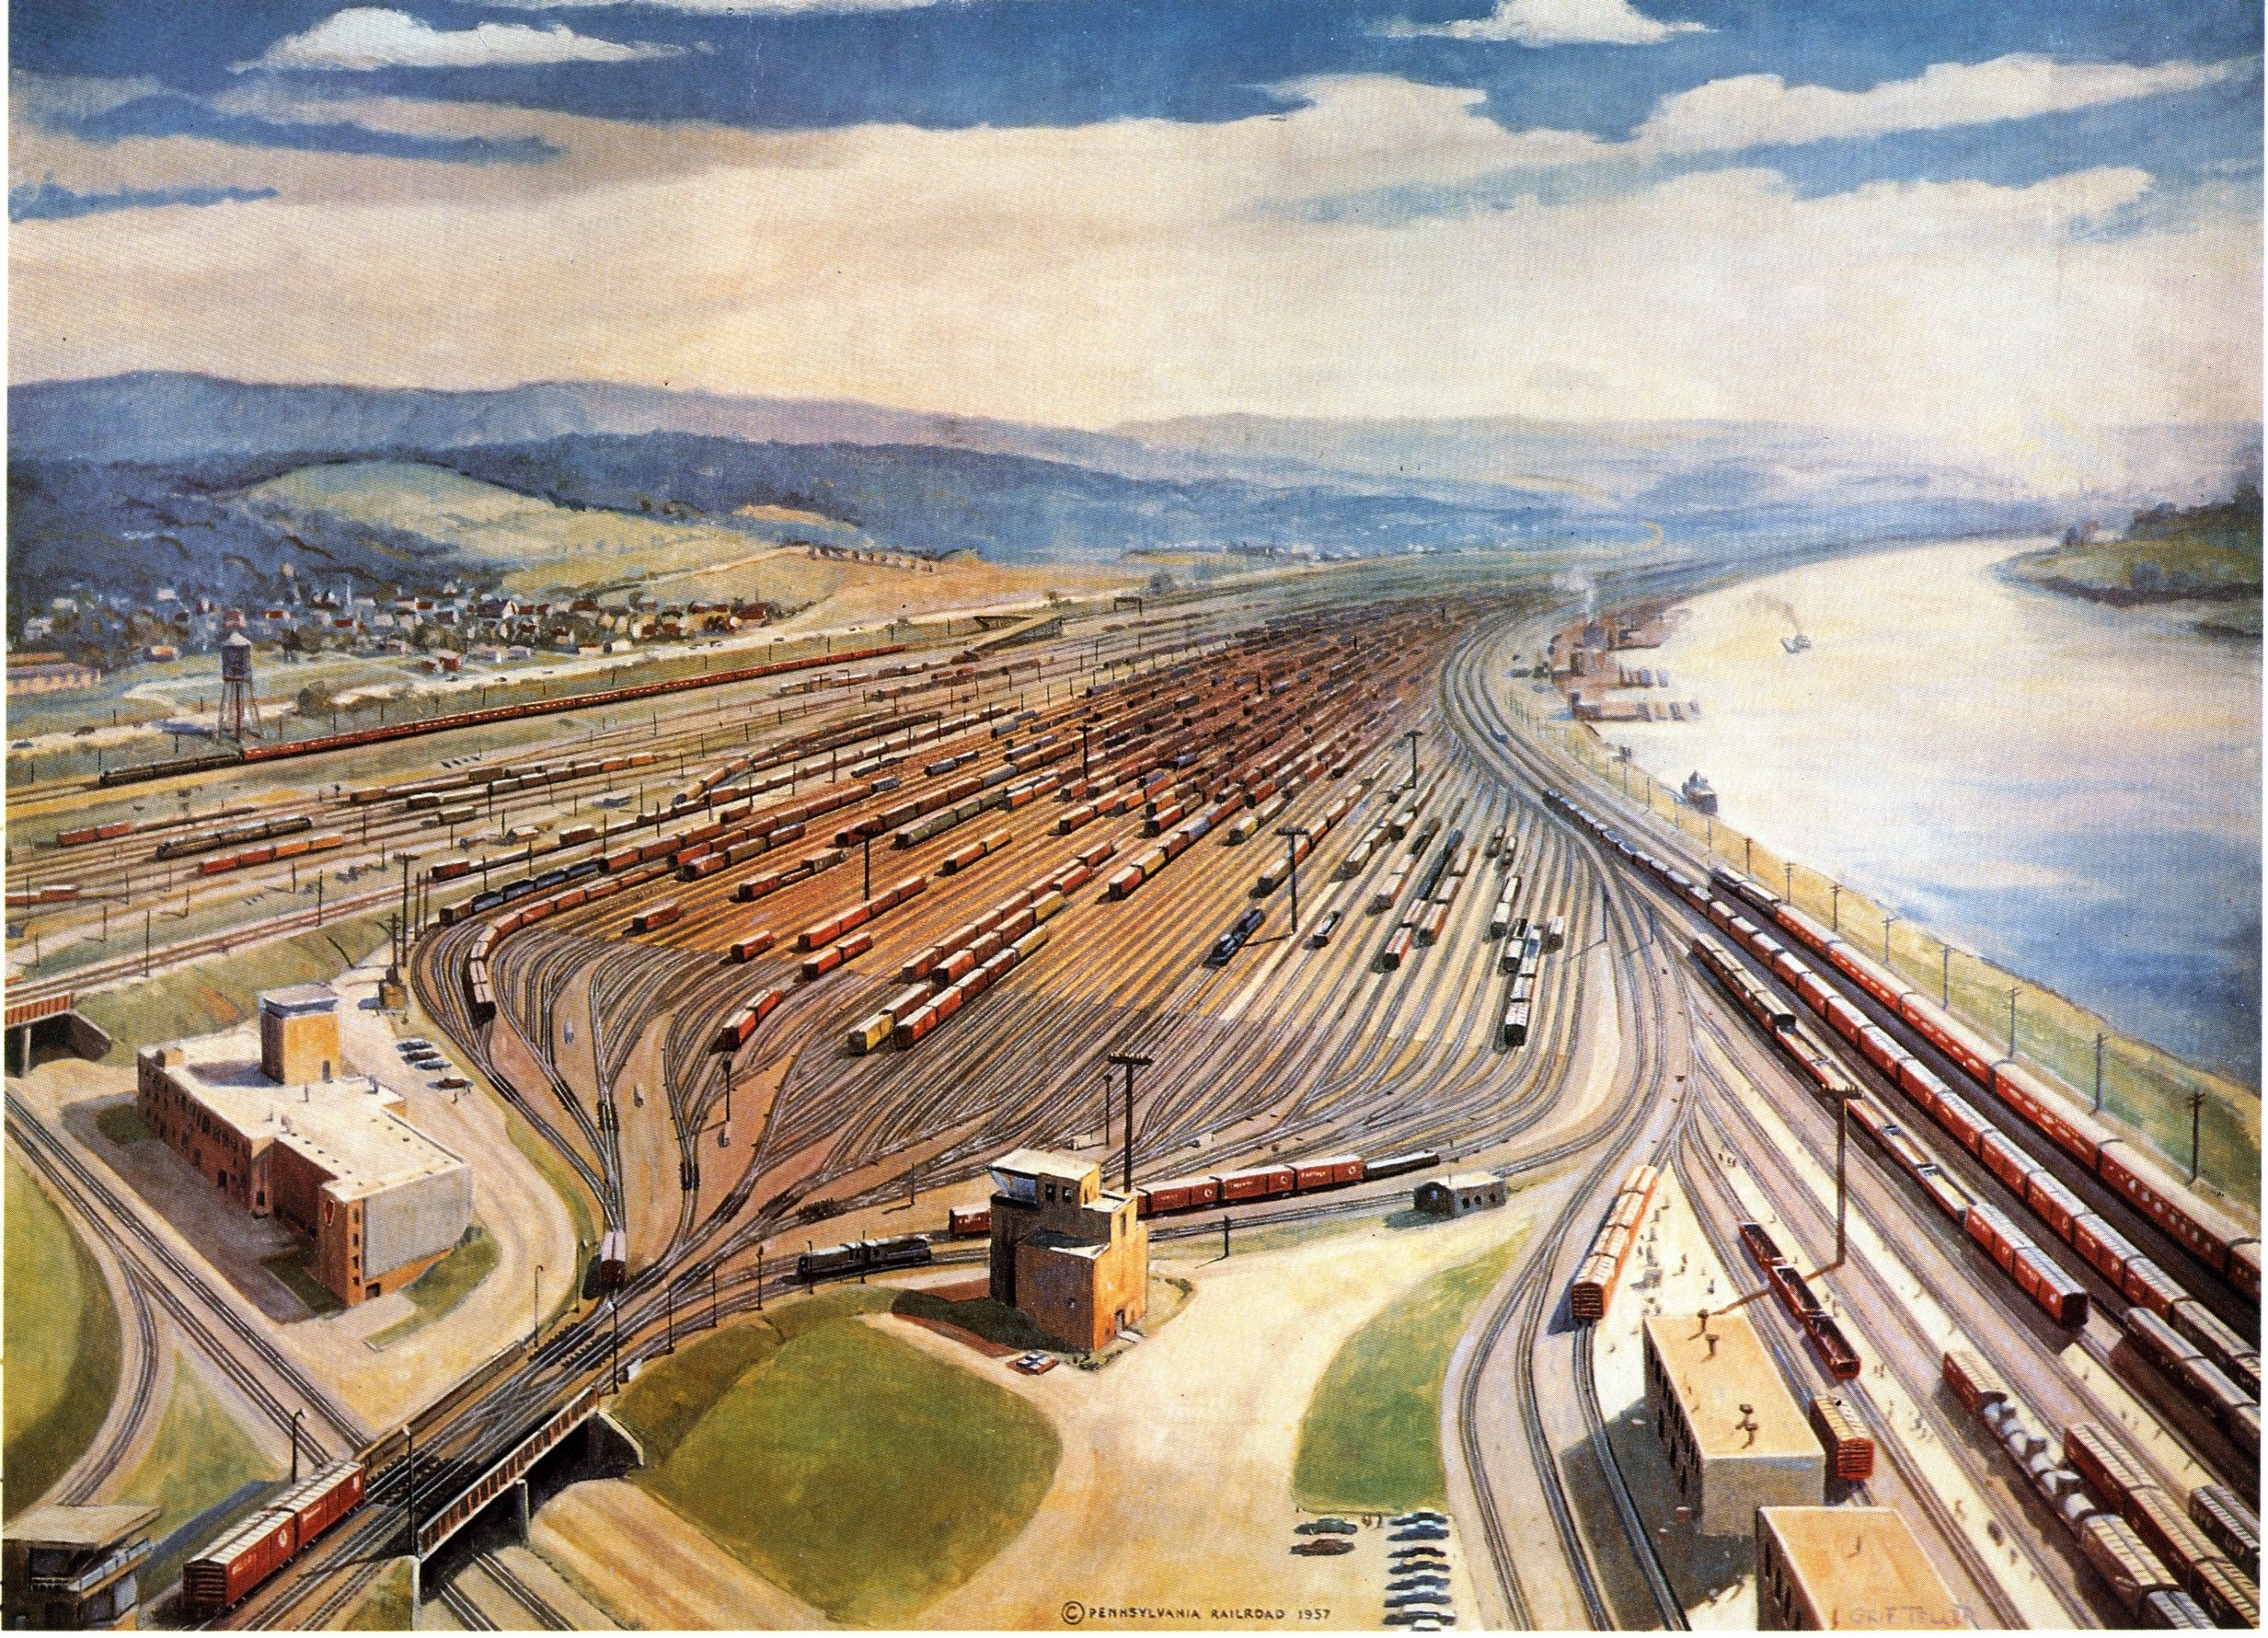 When rebuilt in the 1950s the Conway Yard 20 miles northwest of